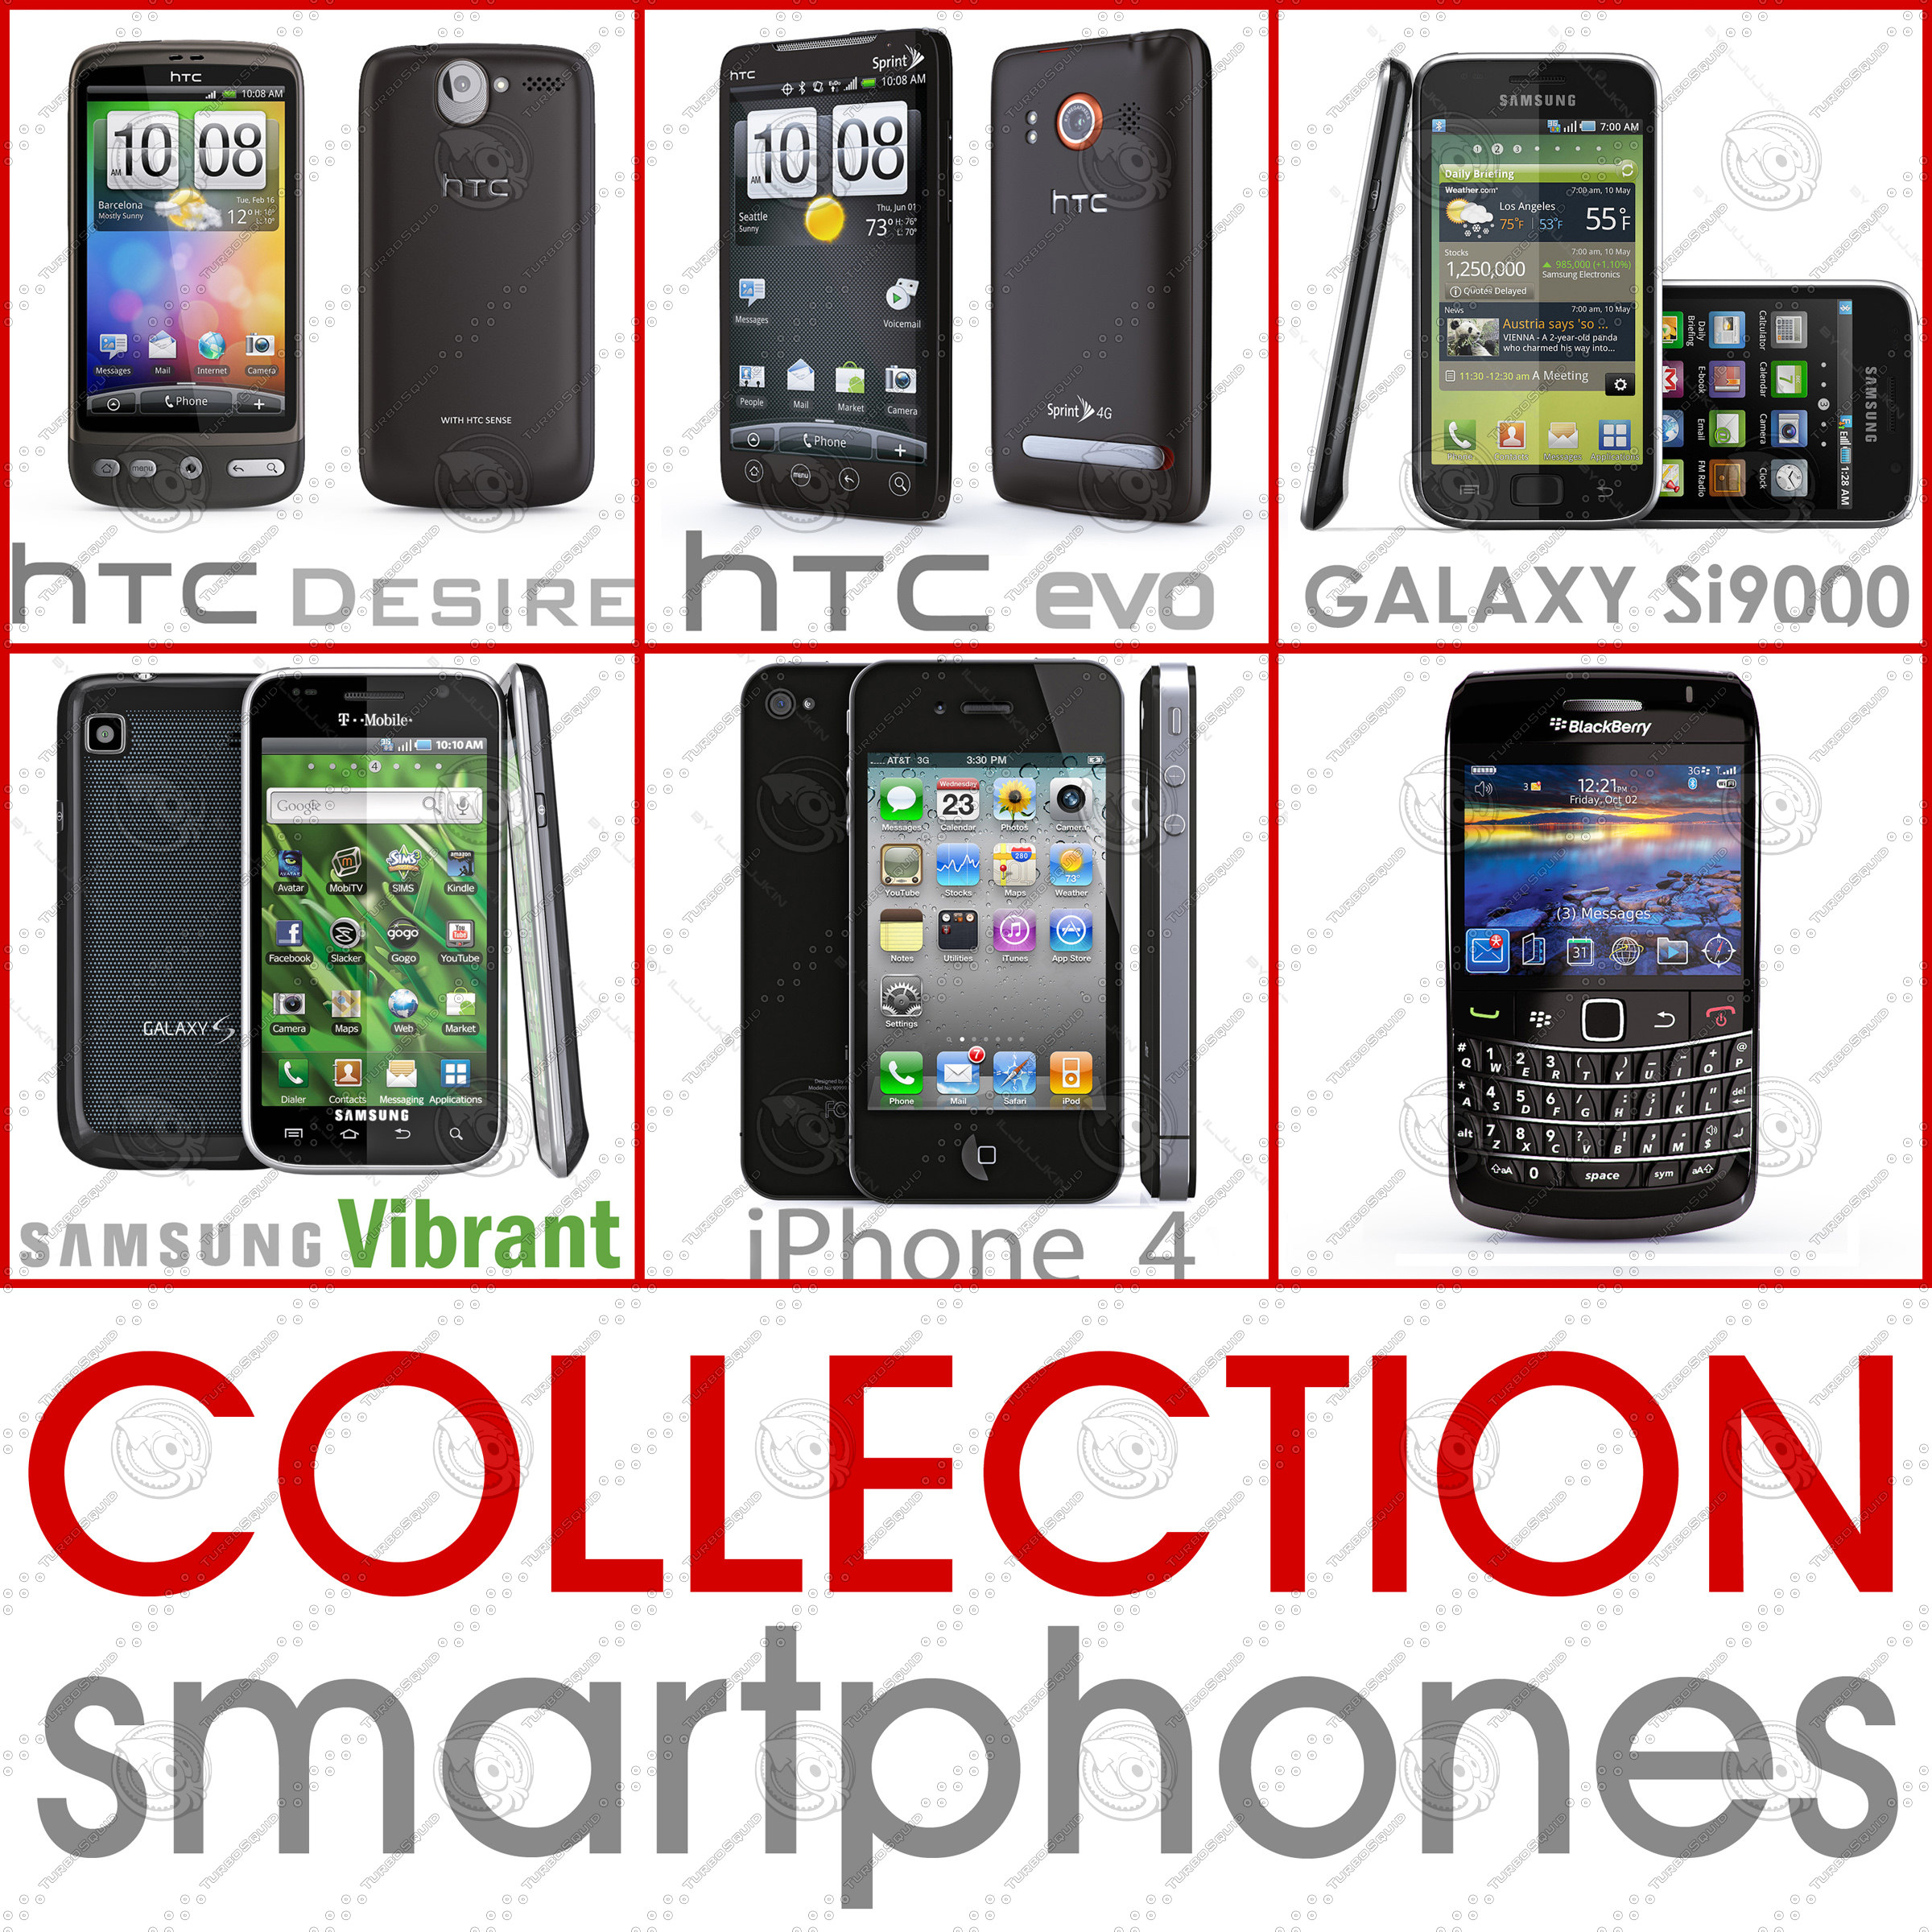 Collection Top smartphone